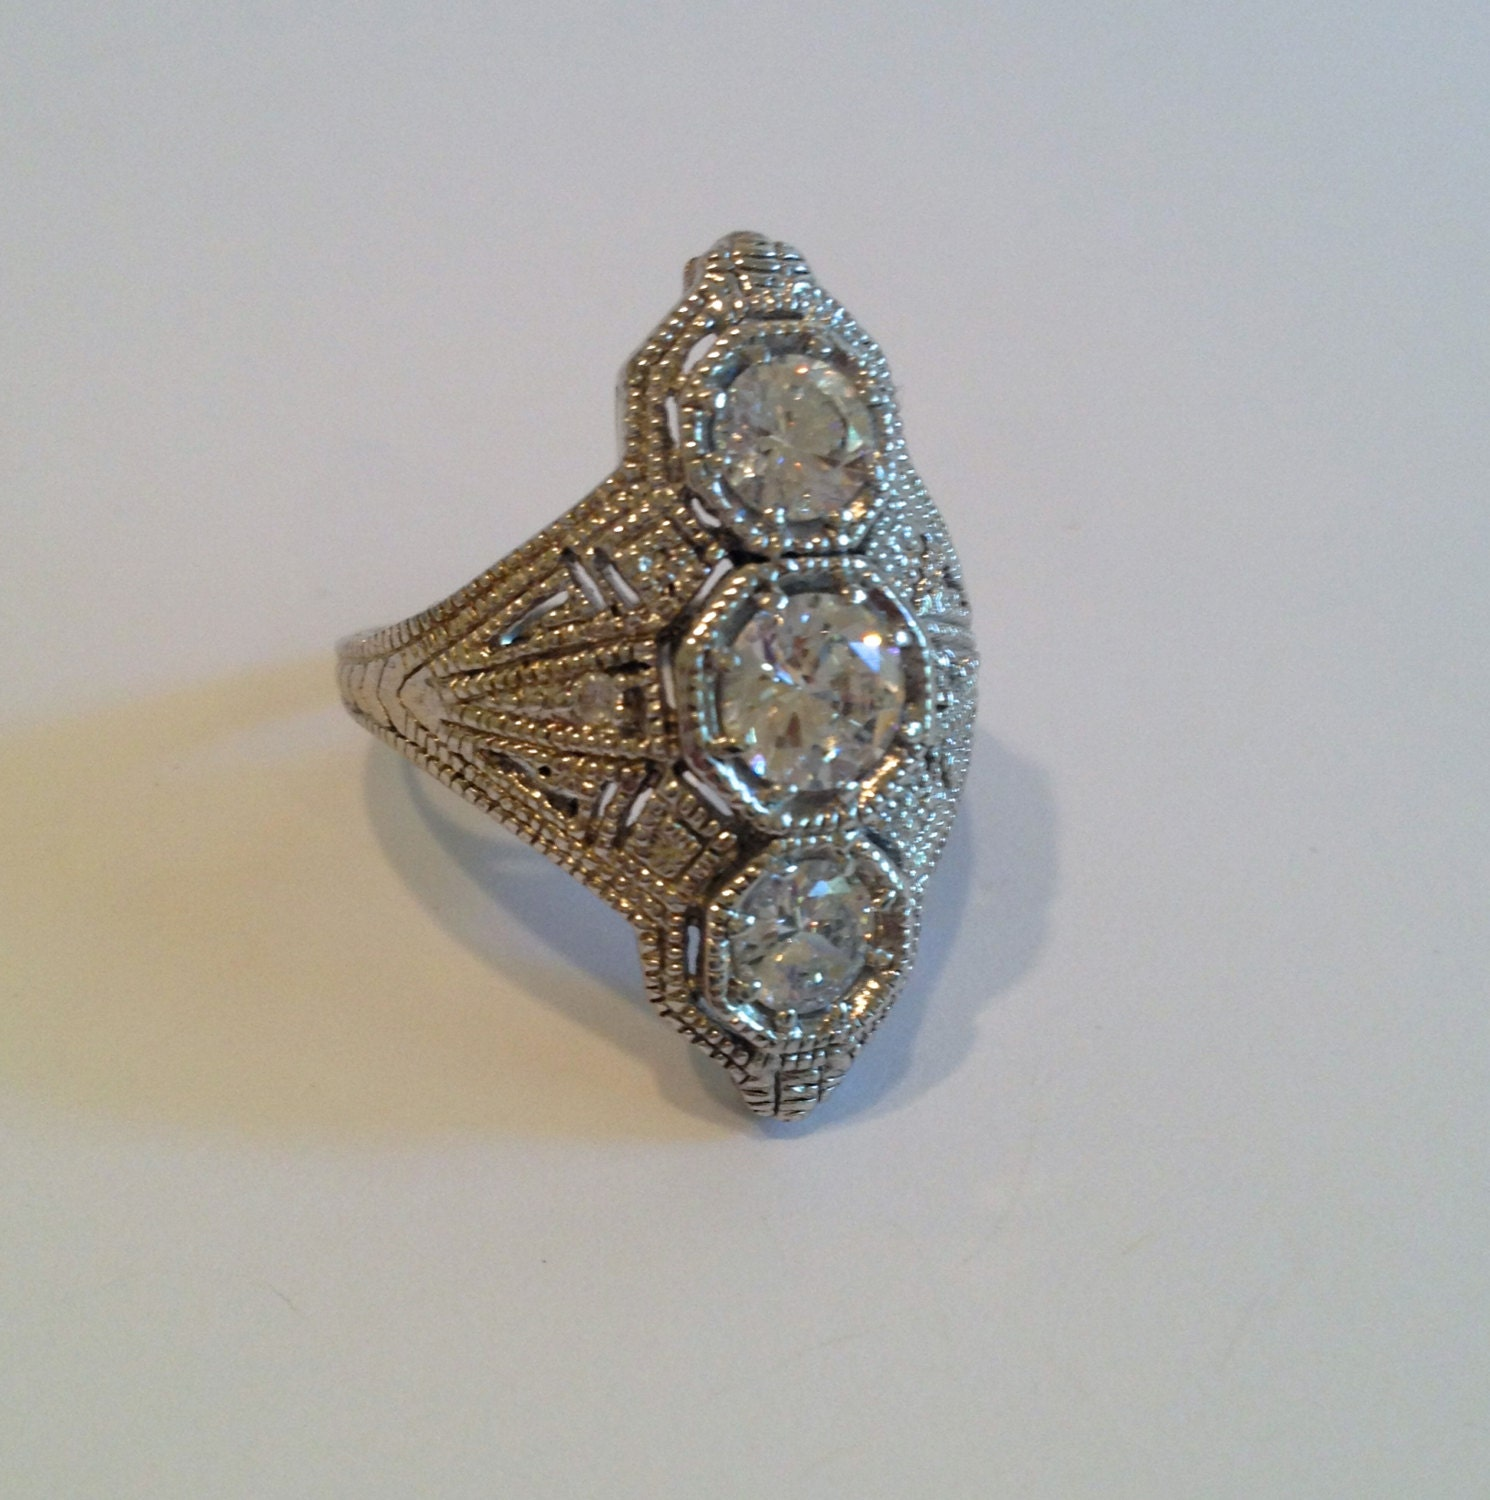 vintage sterling silver estate jewelry ring by